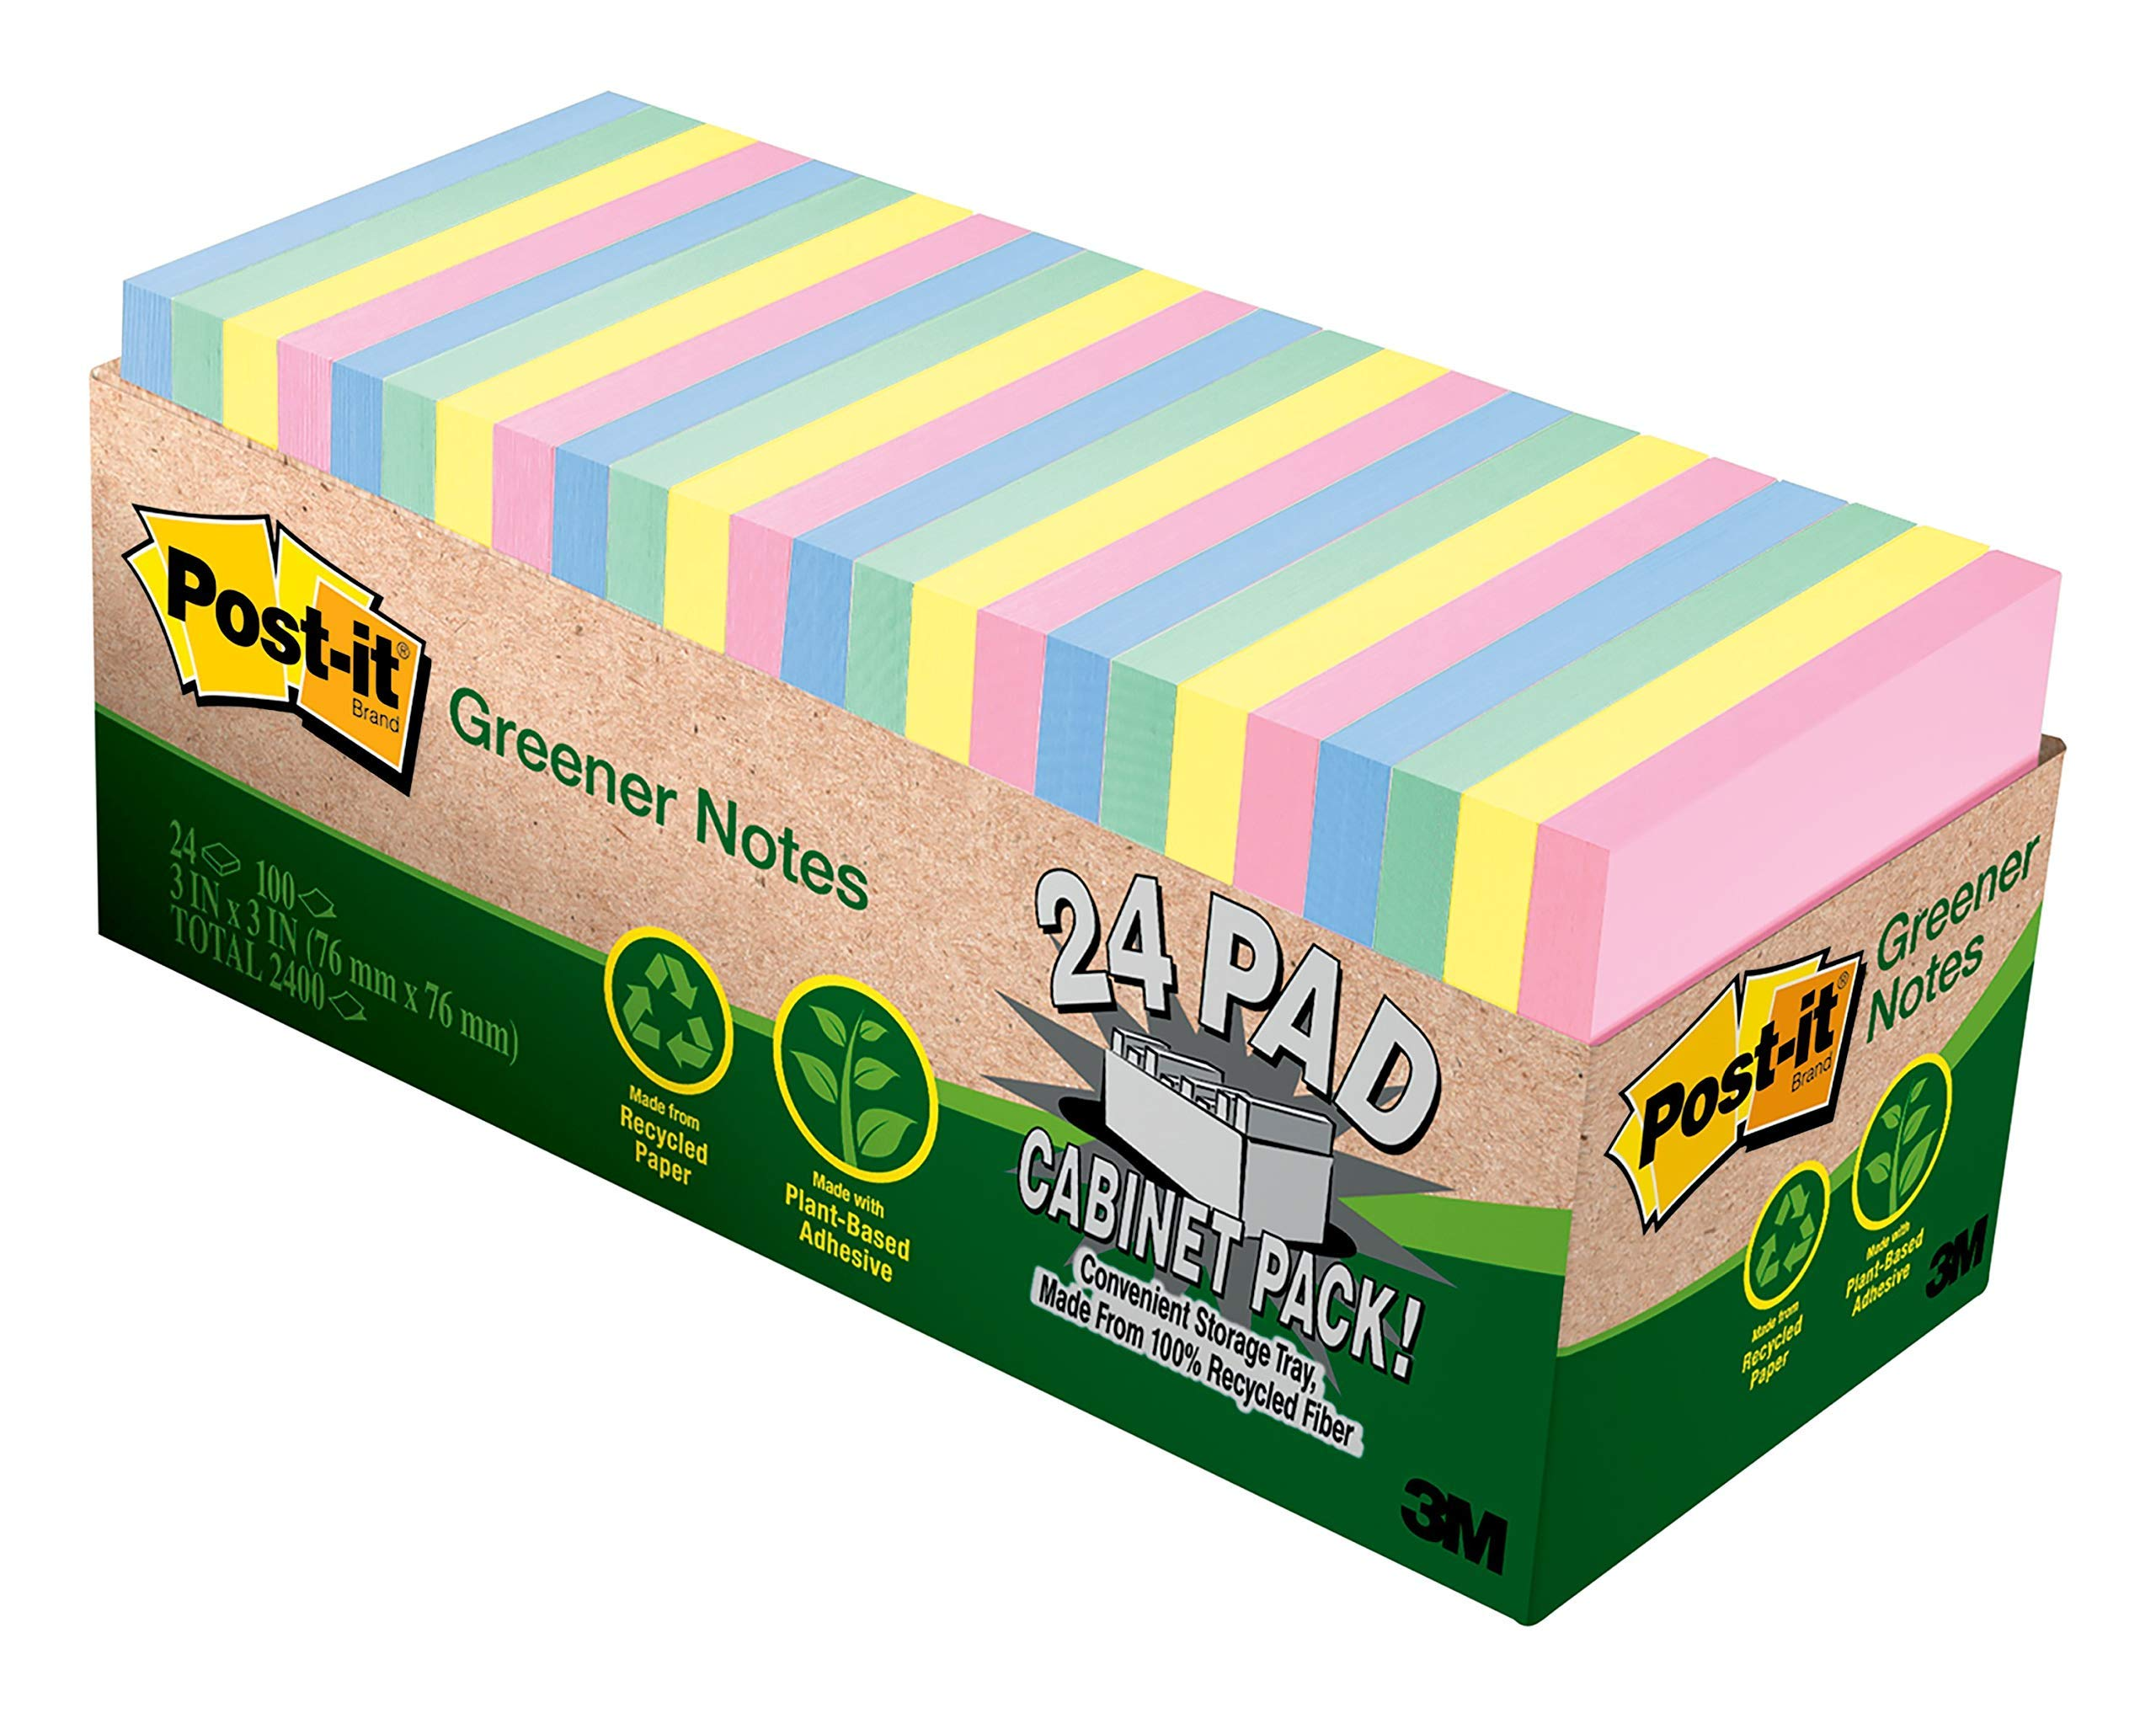 Post-it Greener Notes, Helsinki Colors, Call out Important Information, Recyclable, 3 in. x 3 in, 24 Pads/Pack, 75 Sheets/Pad (654R-24CP-AP)[New Improved Version]